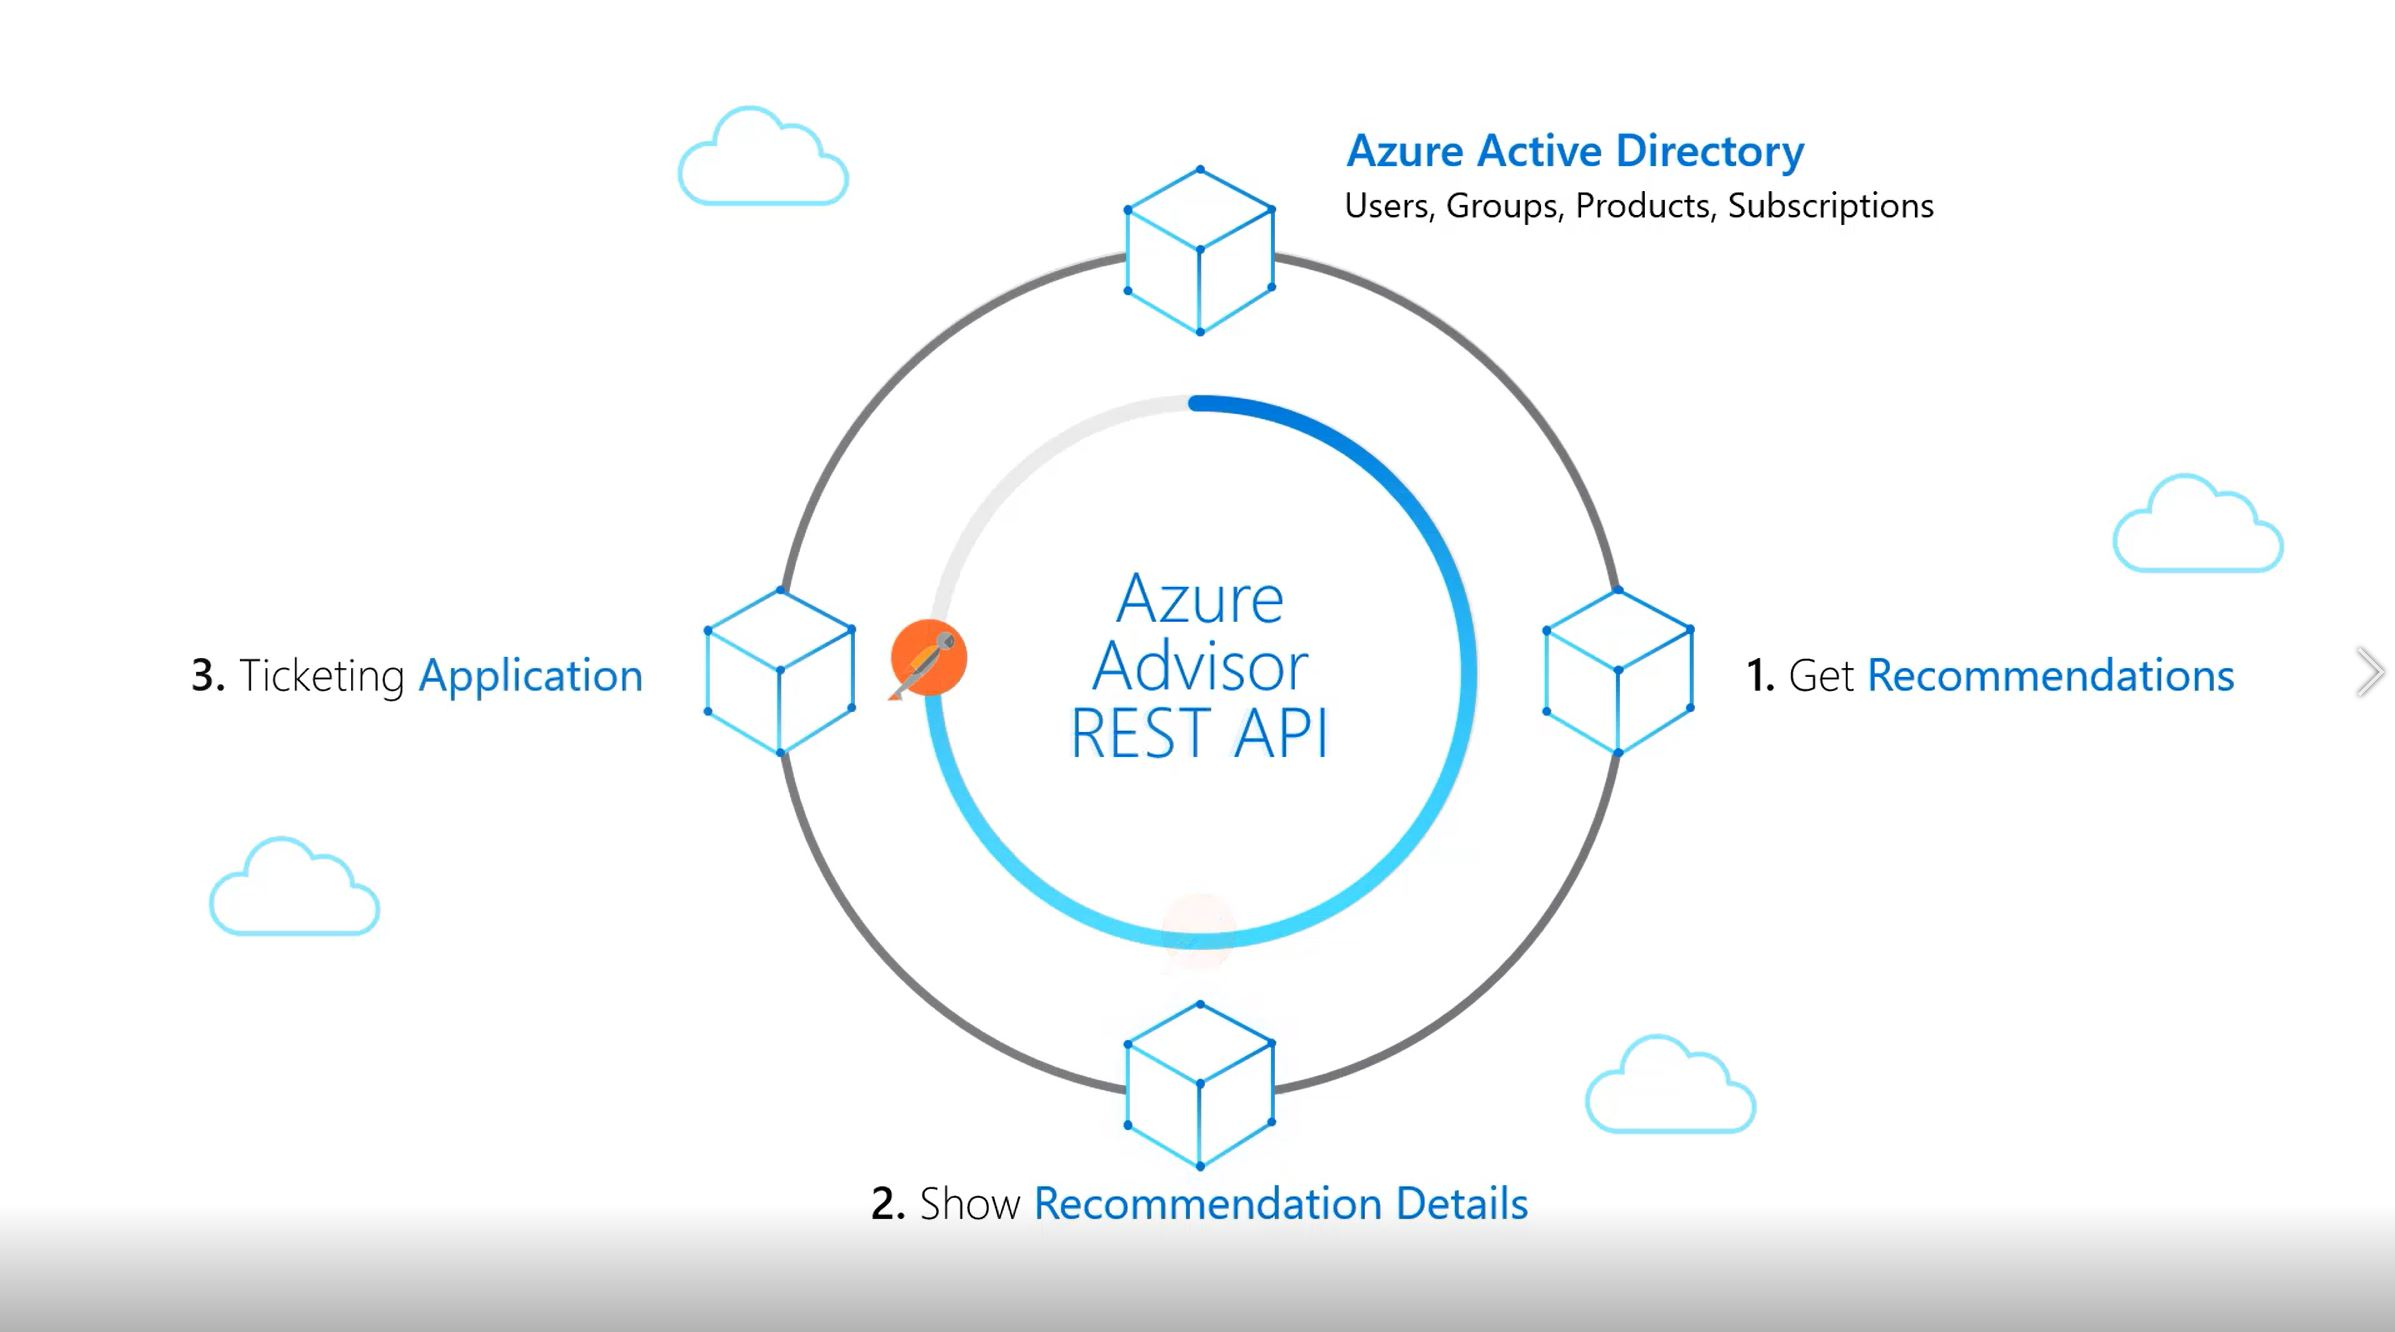 How to use the Advisor API to remediate recommendations